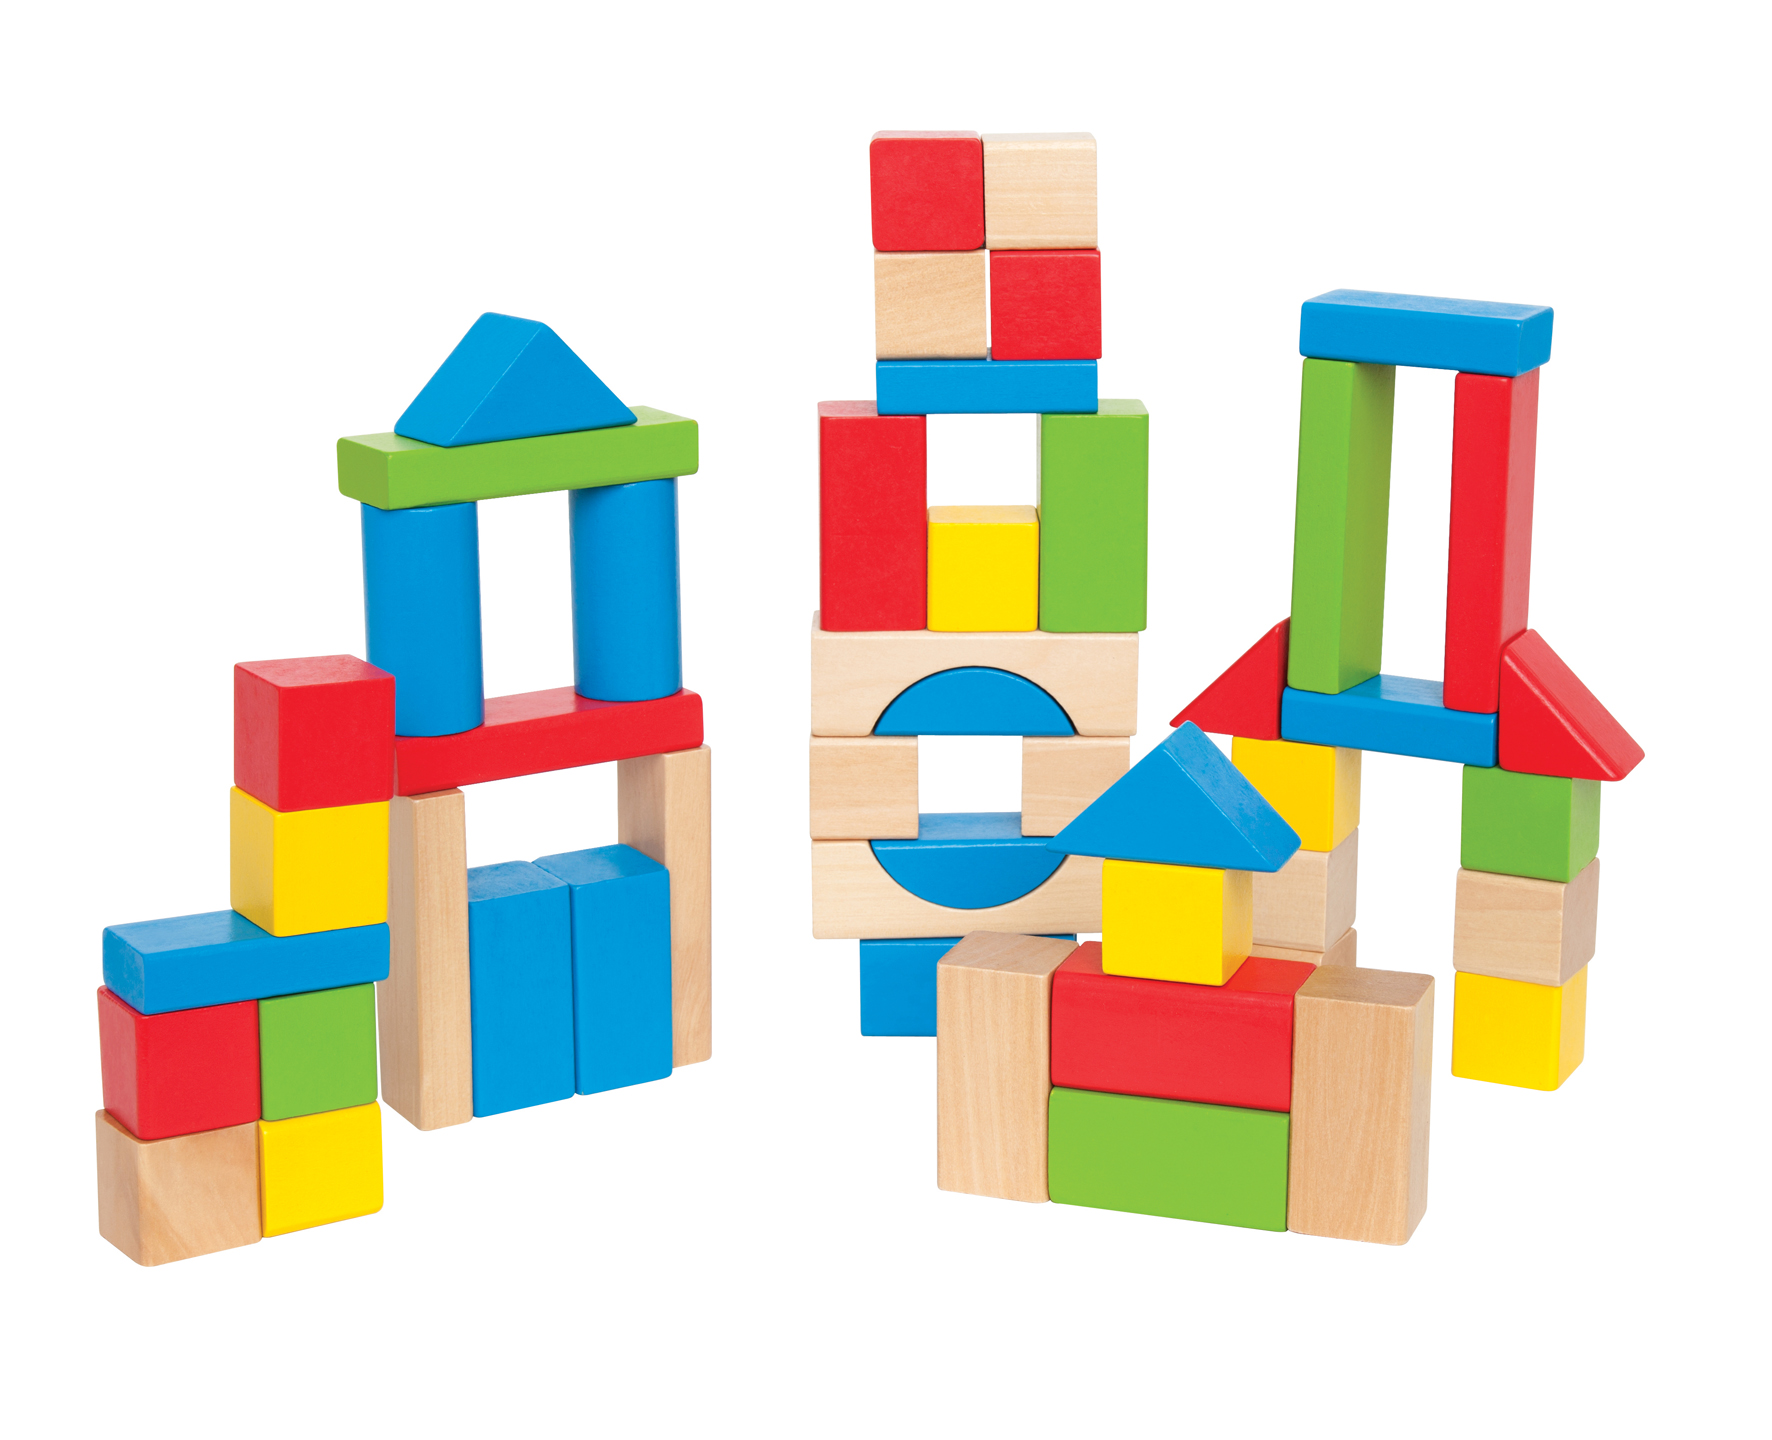 Maple 50 Piece Block Set, Wooden Block set, Childrens Wooden Blocks